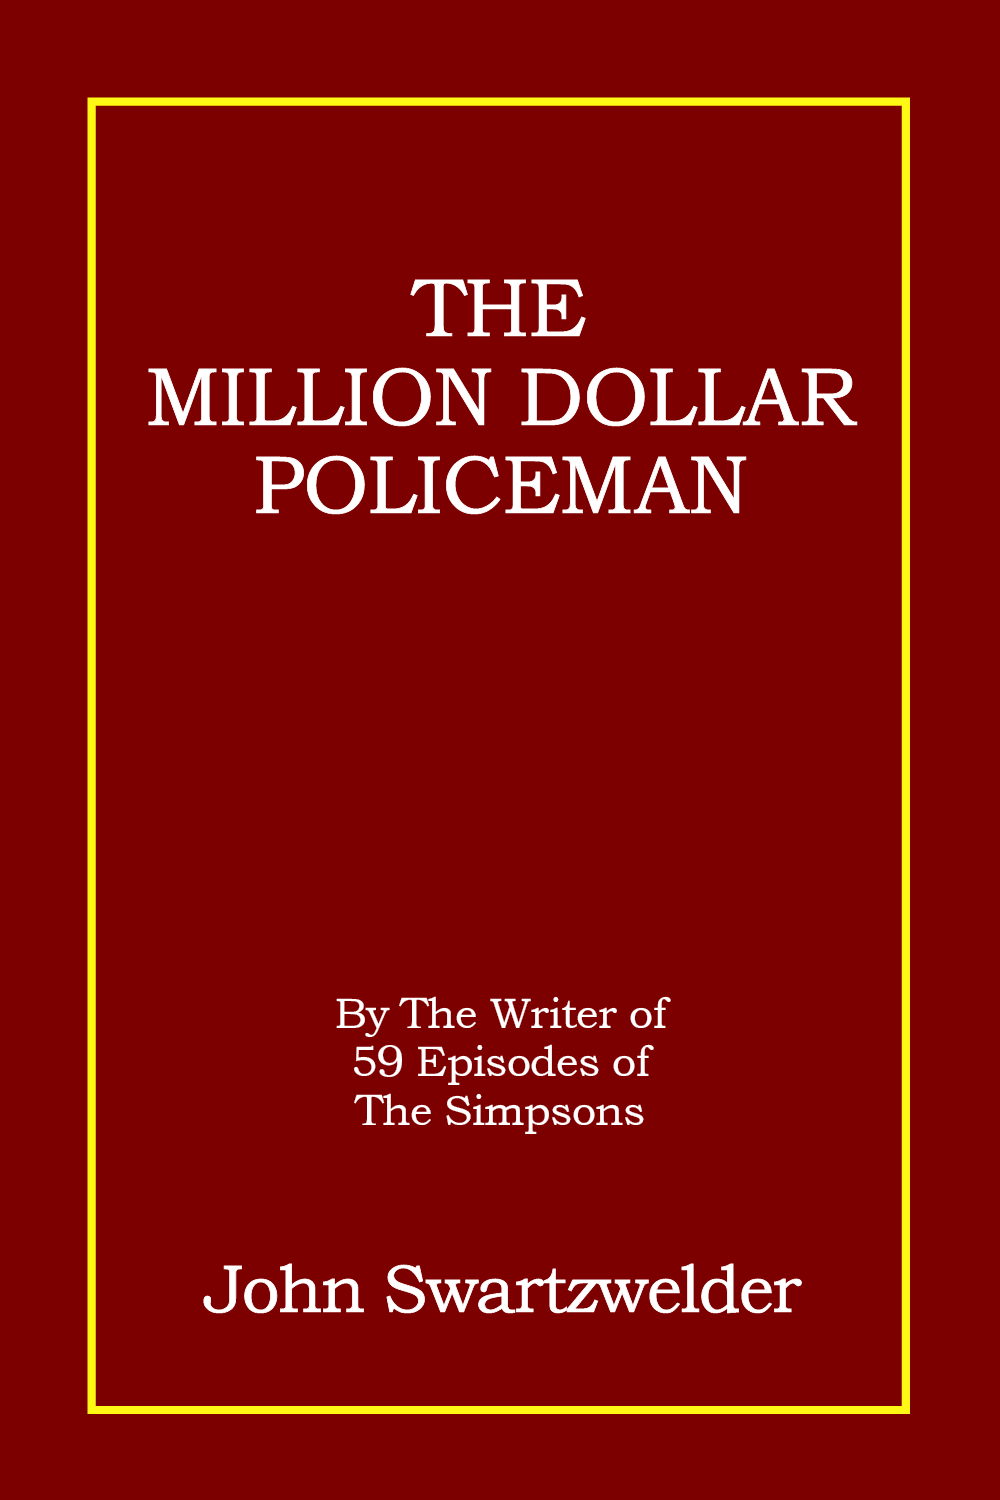 The Million Dollar Policeman by John Swartzwelder